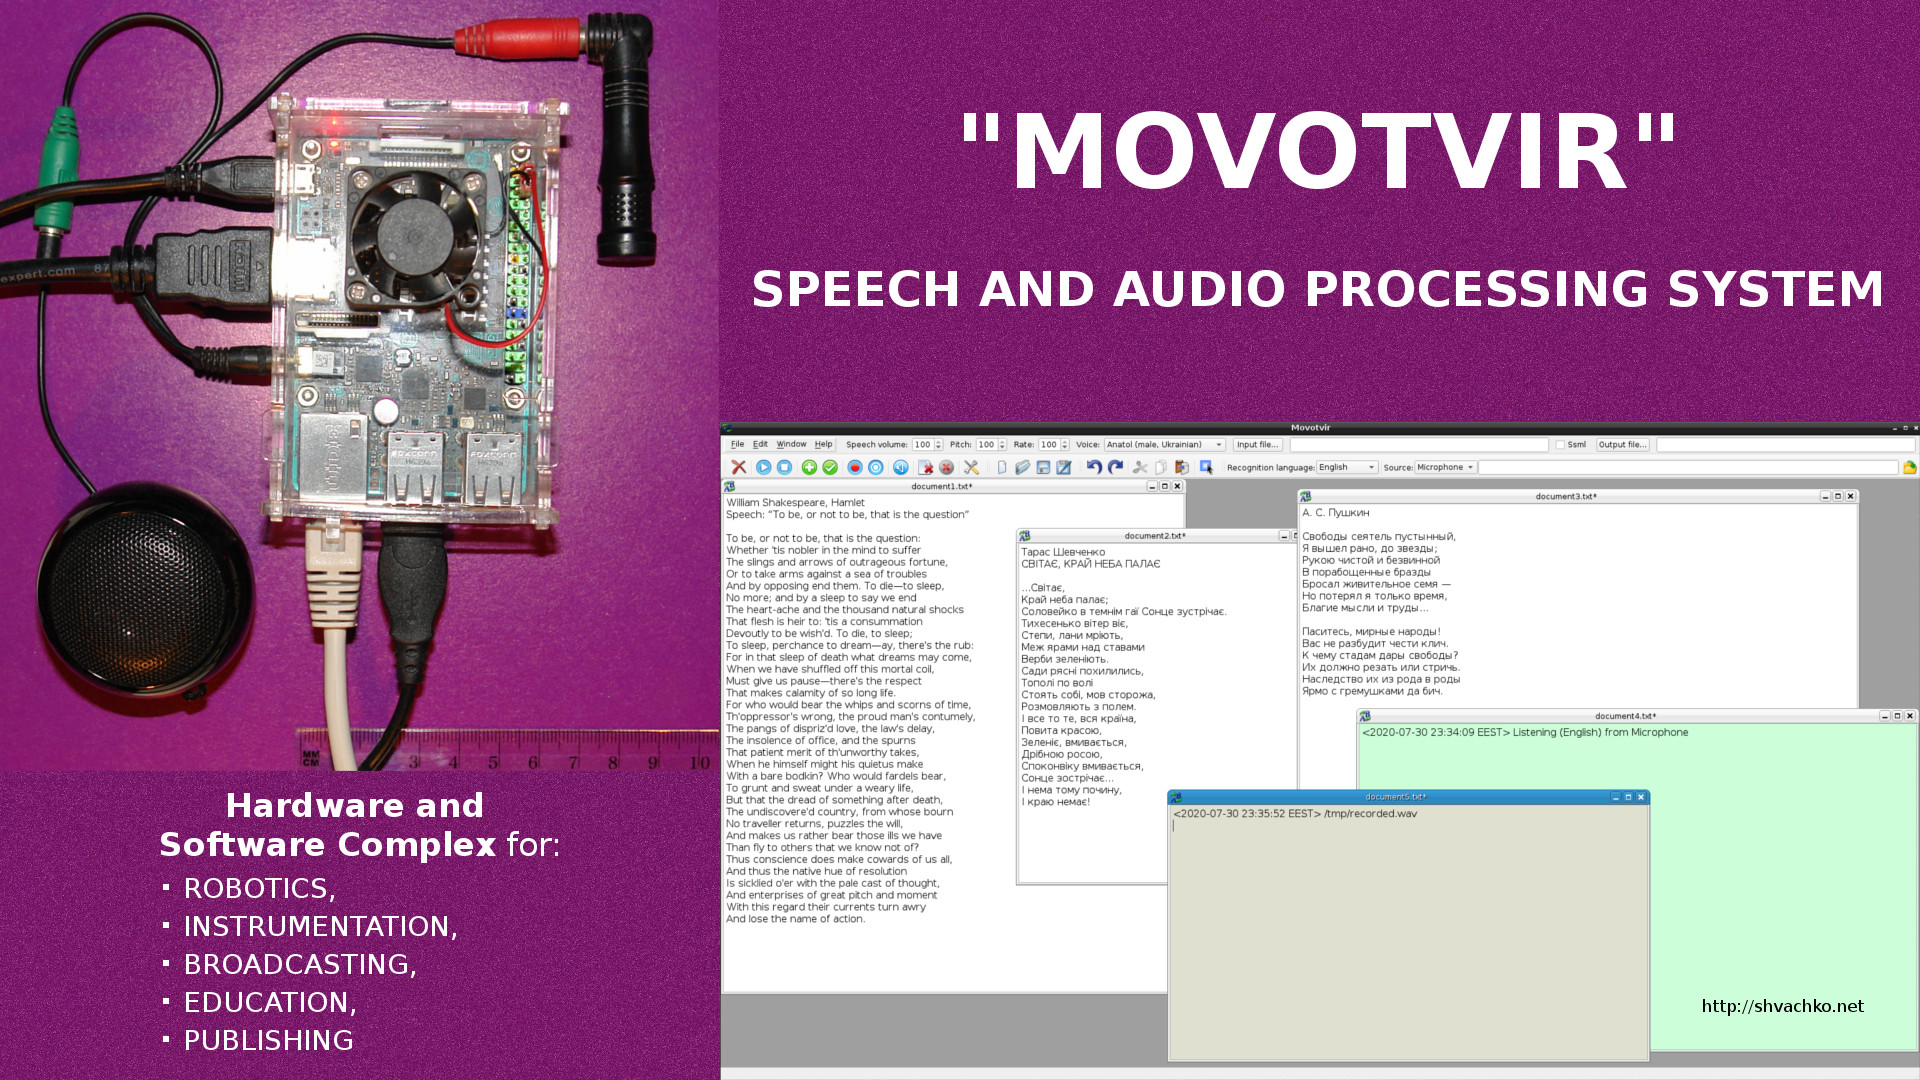 Speech and audio processing system _Movotvir_